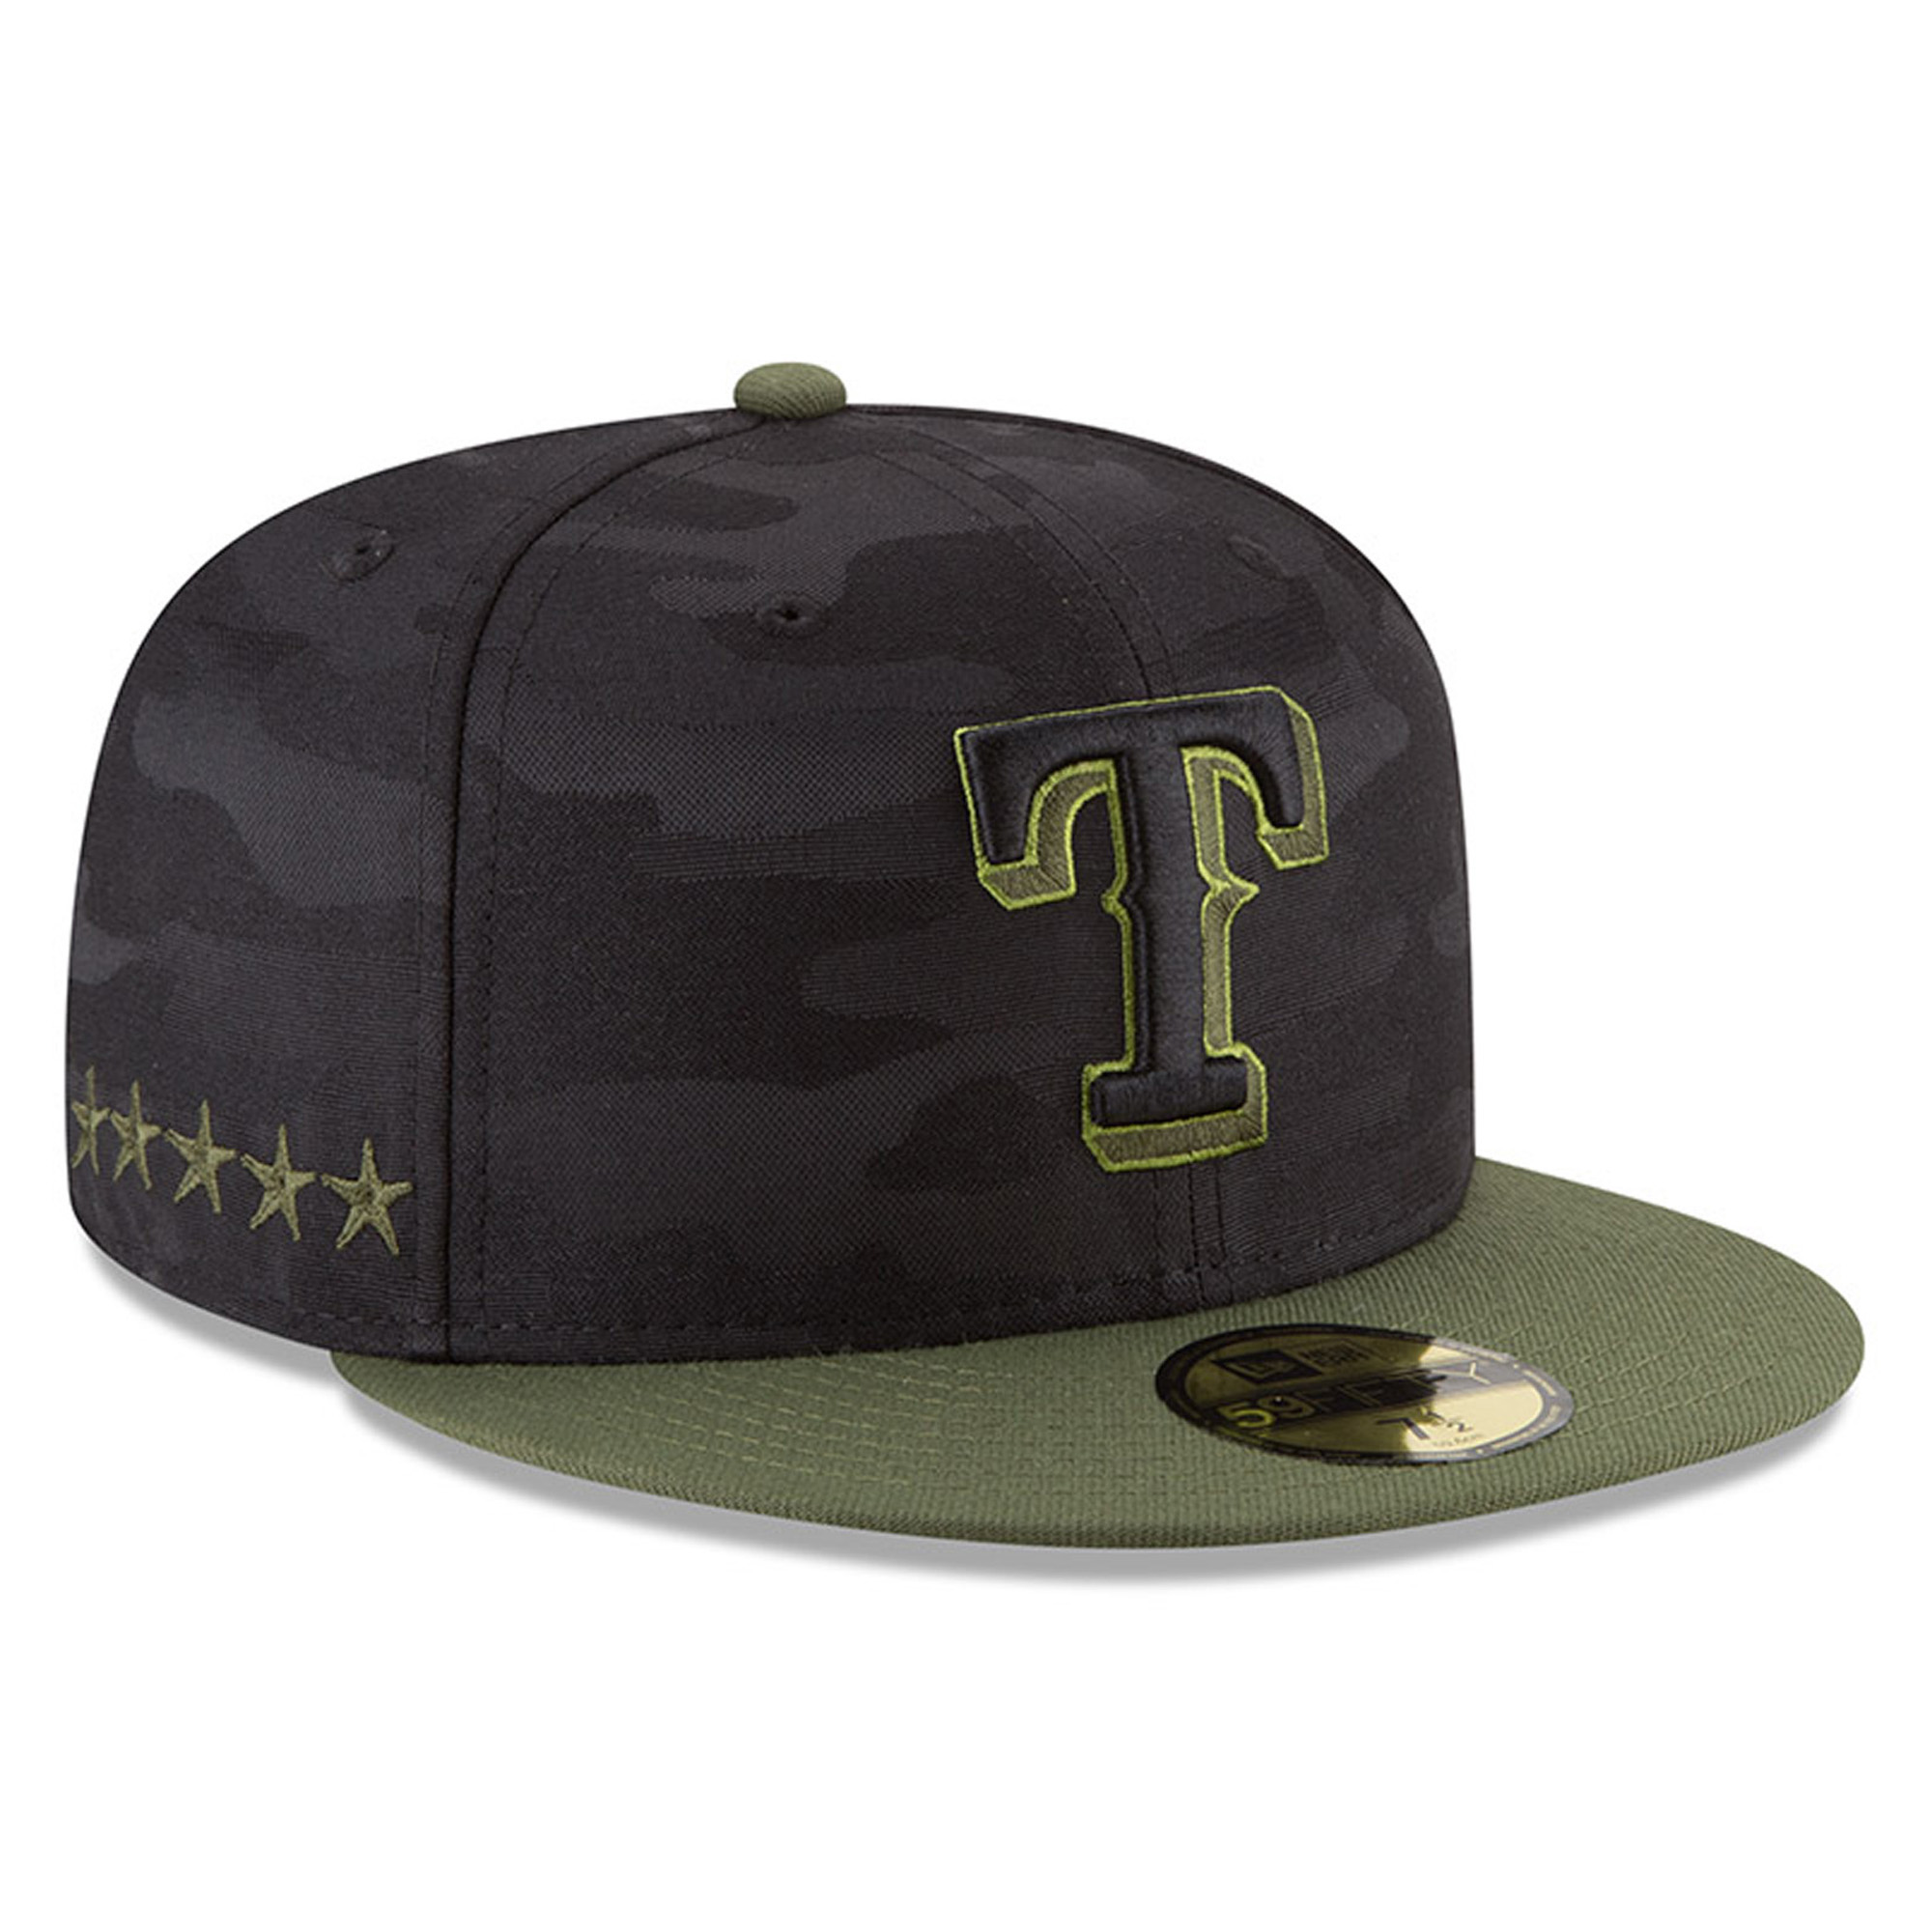 Texas Rangers New Era 2018 Memorial Day On-Field 59FIFTY Fitted Hat - Black